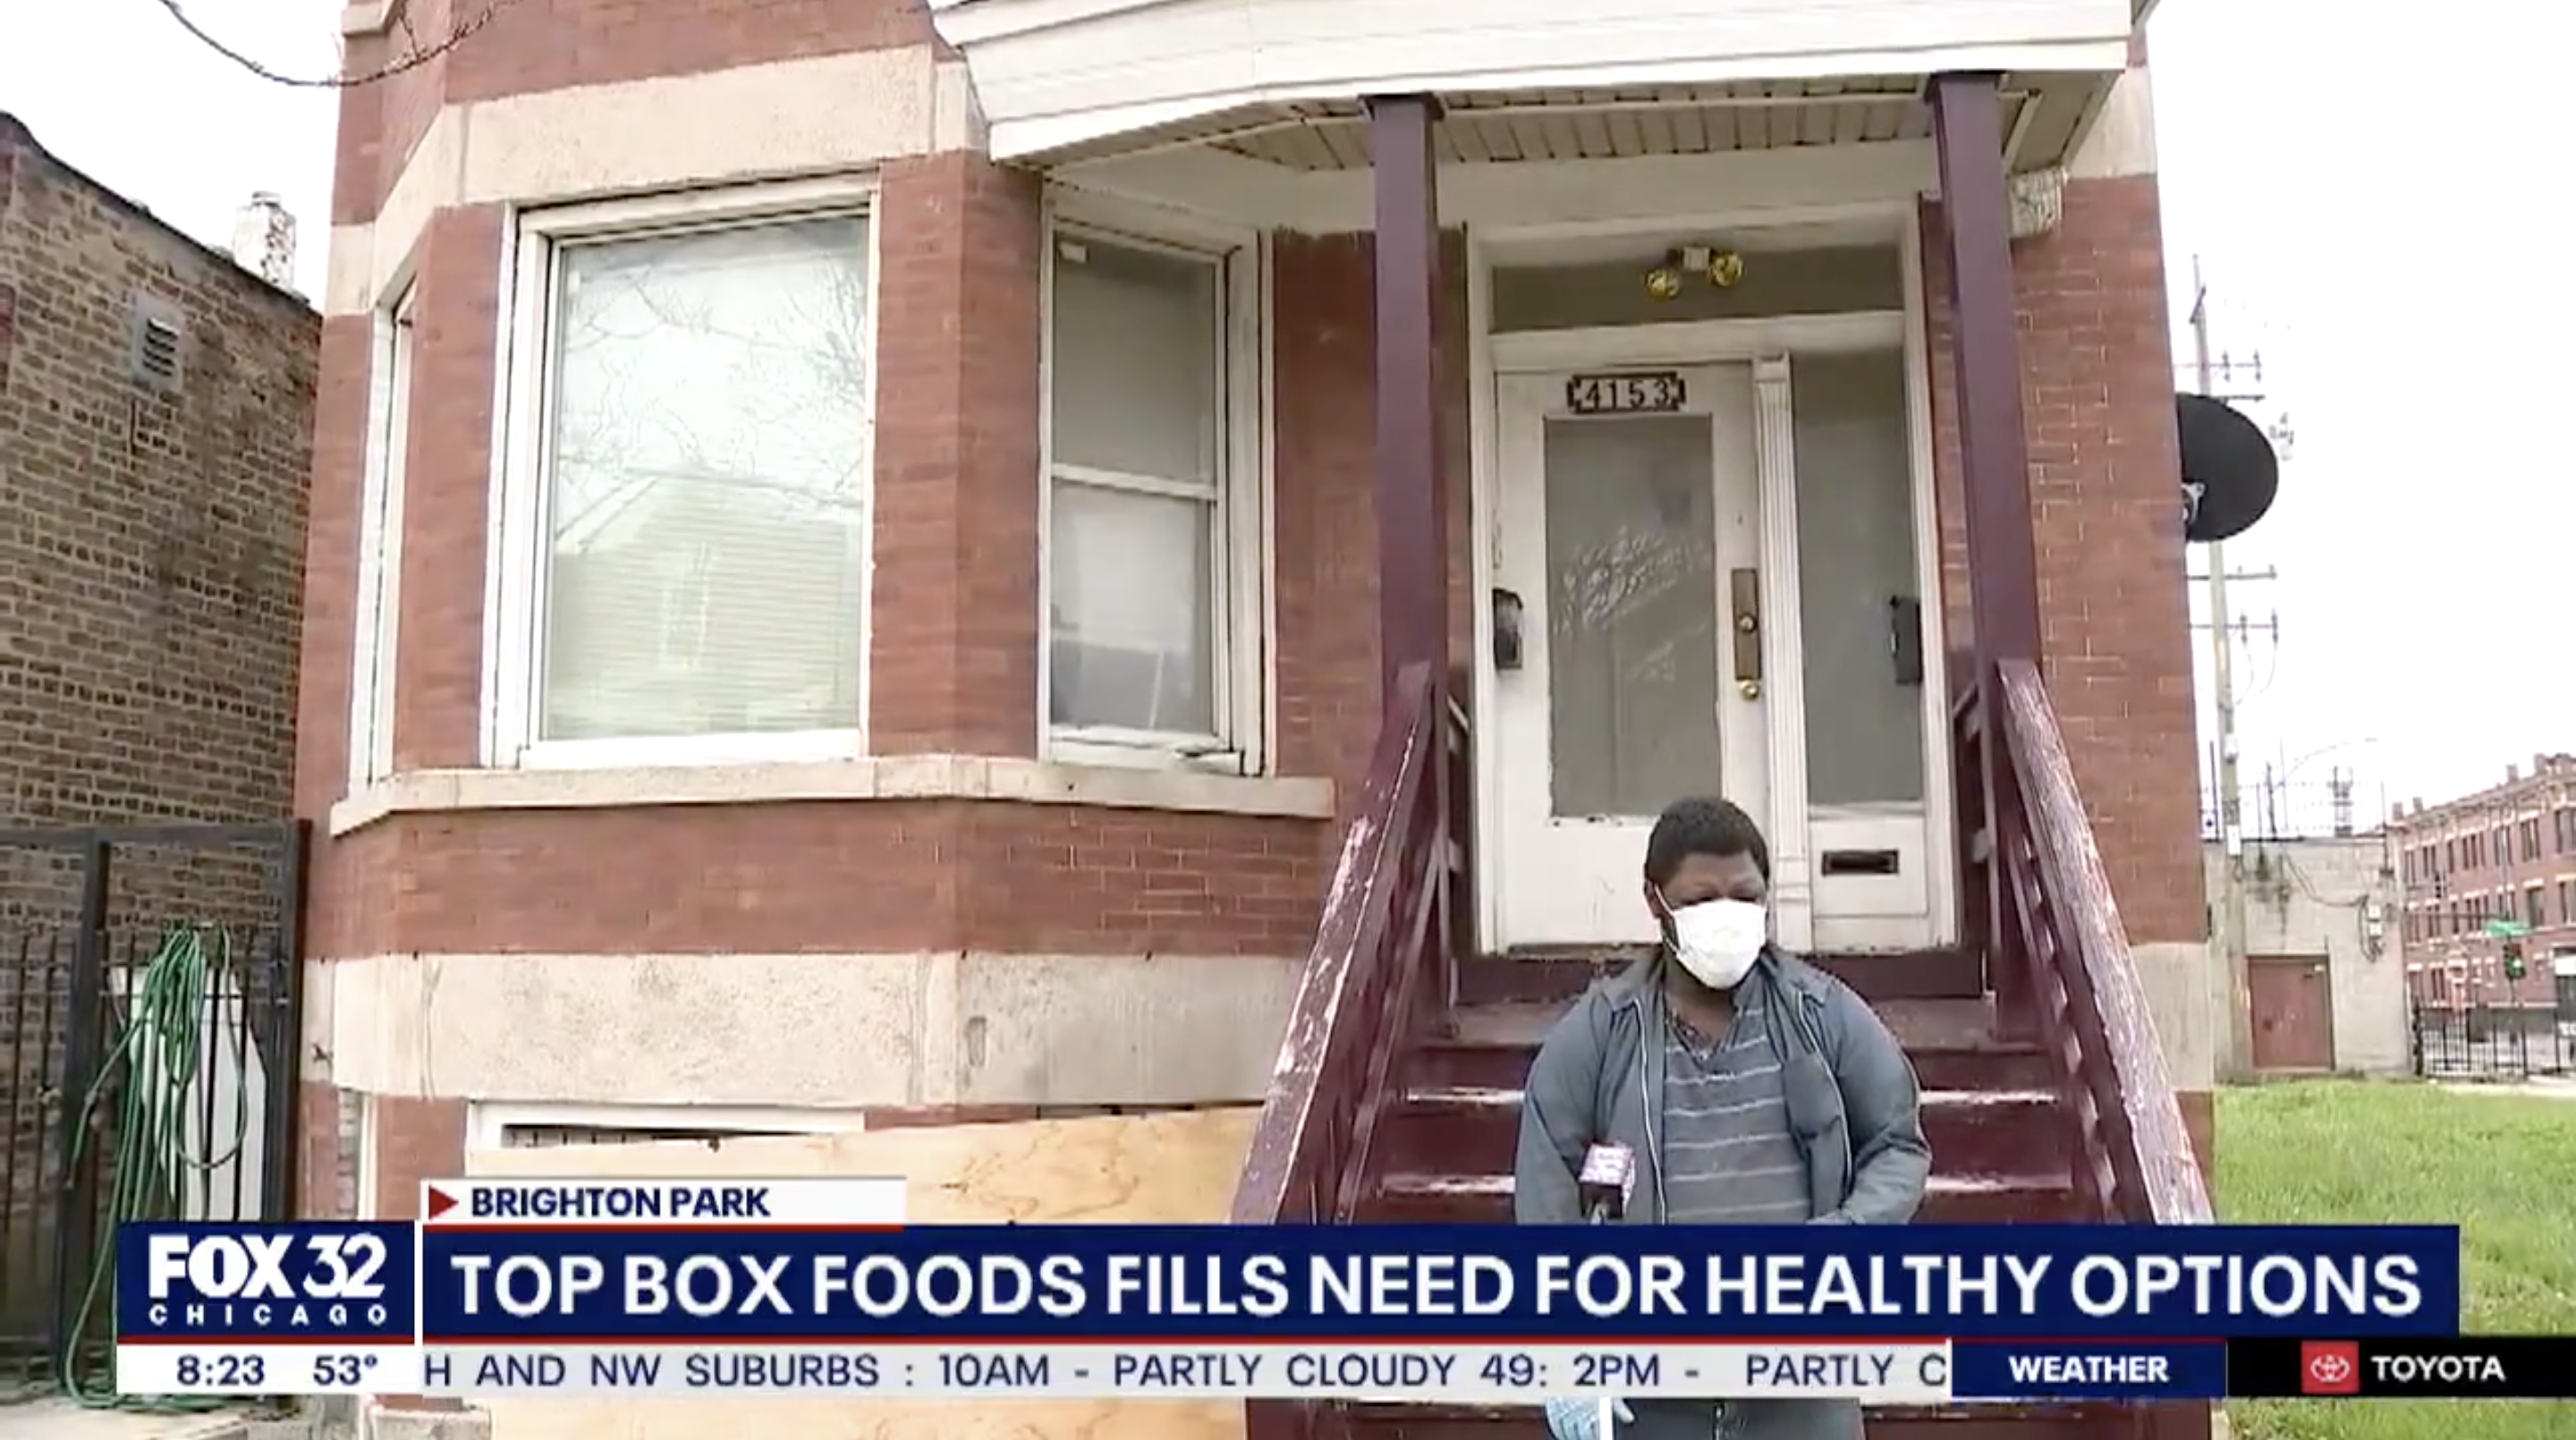 Fox 32 Chicago interviewing Top Box Foods customer on the impact of home delivery during the COVID-19 pandemic.